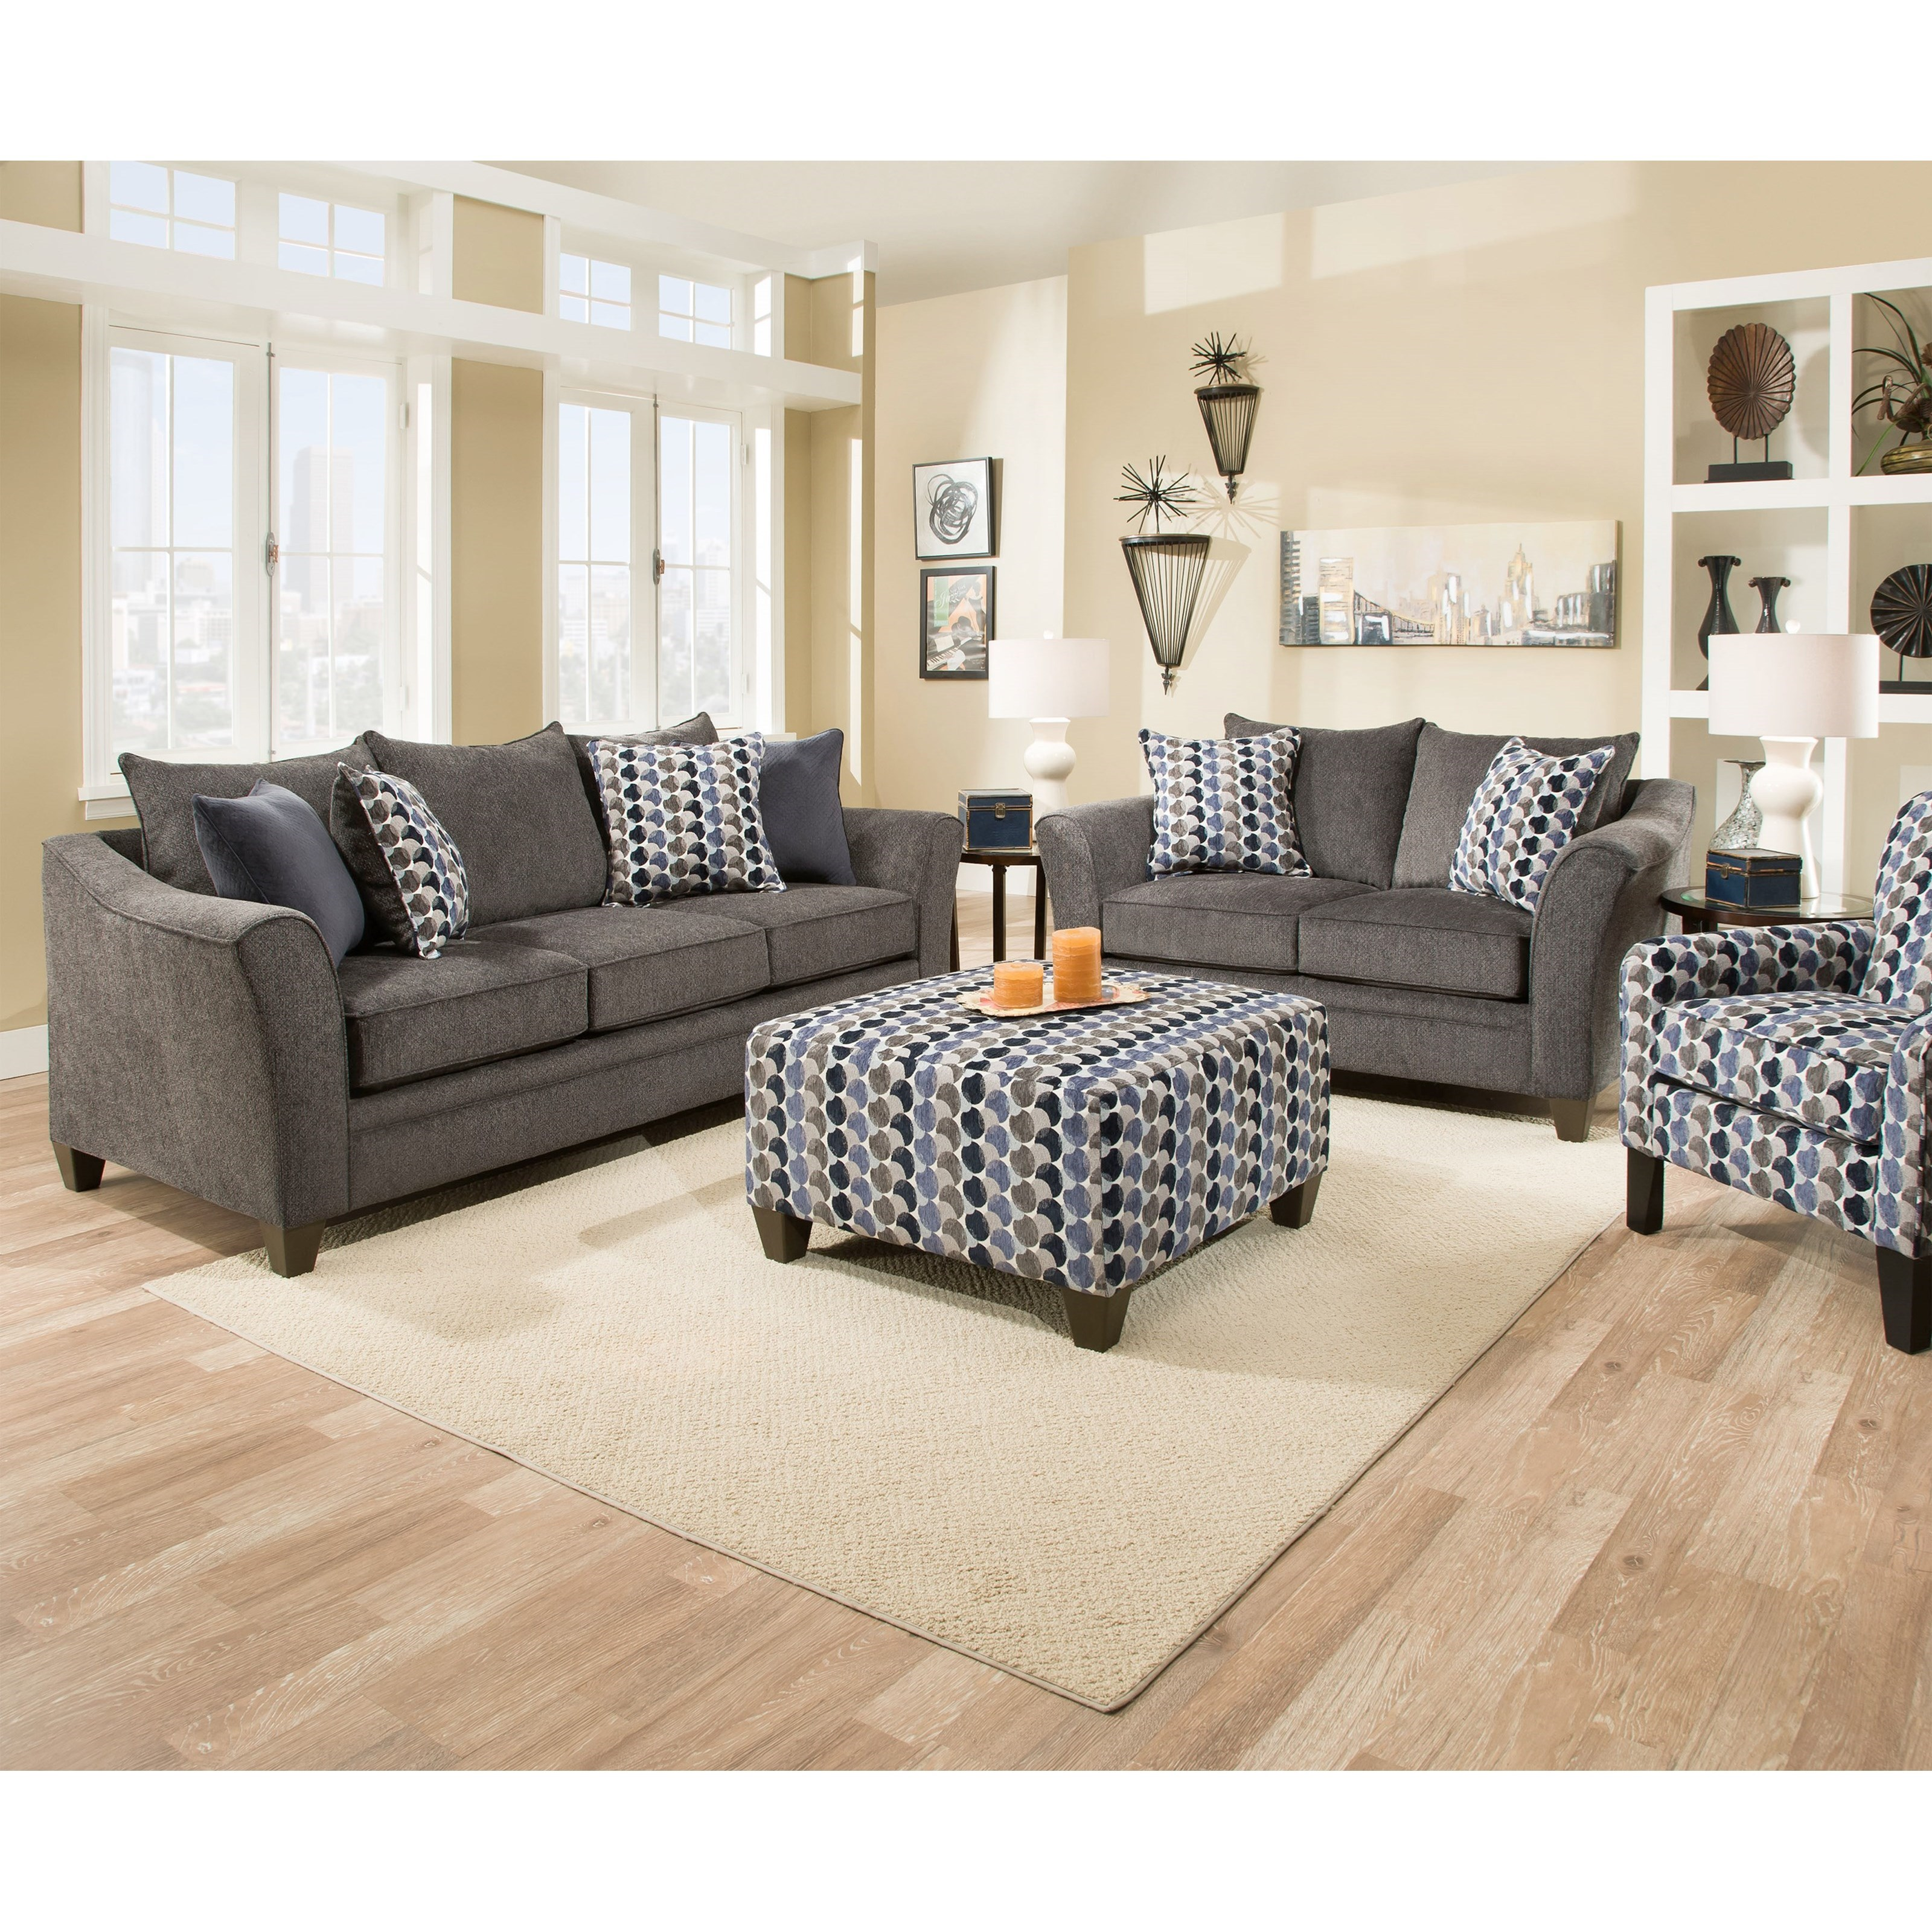 United furniture industries 6485 6485cocktailottoman for Furniture industry